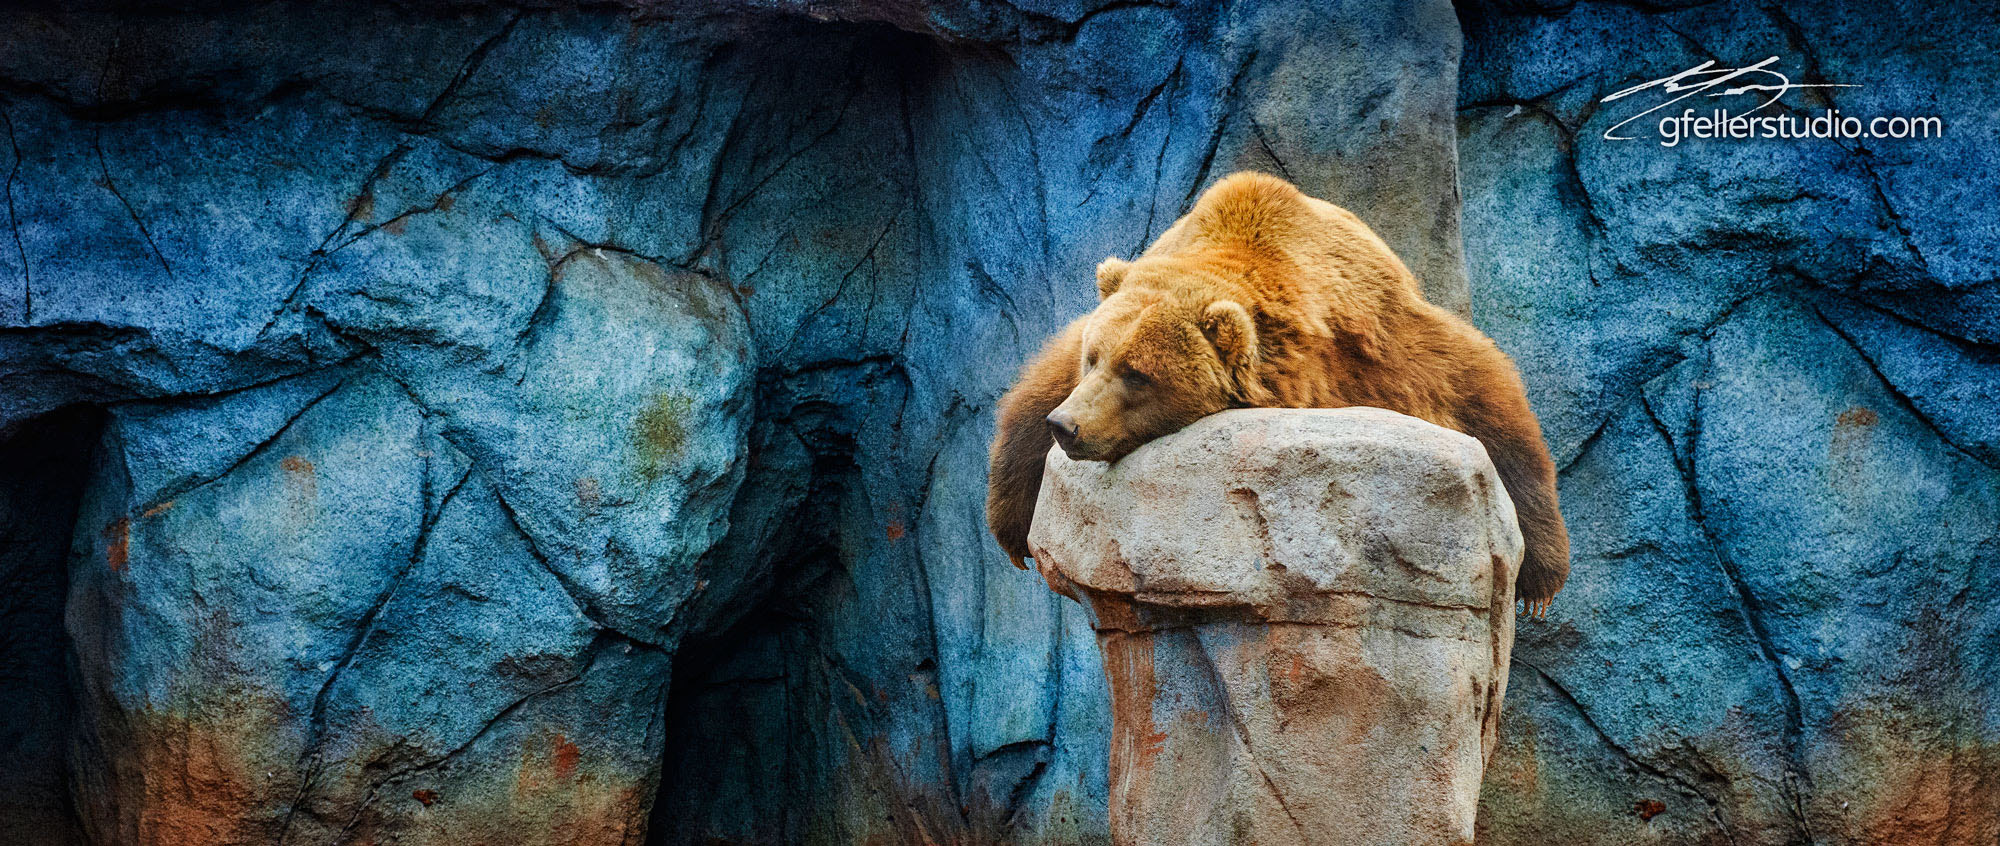 Photograph Laid backed Grizzly Bear by Erick Gfeller on 500px